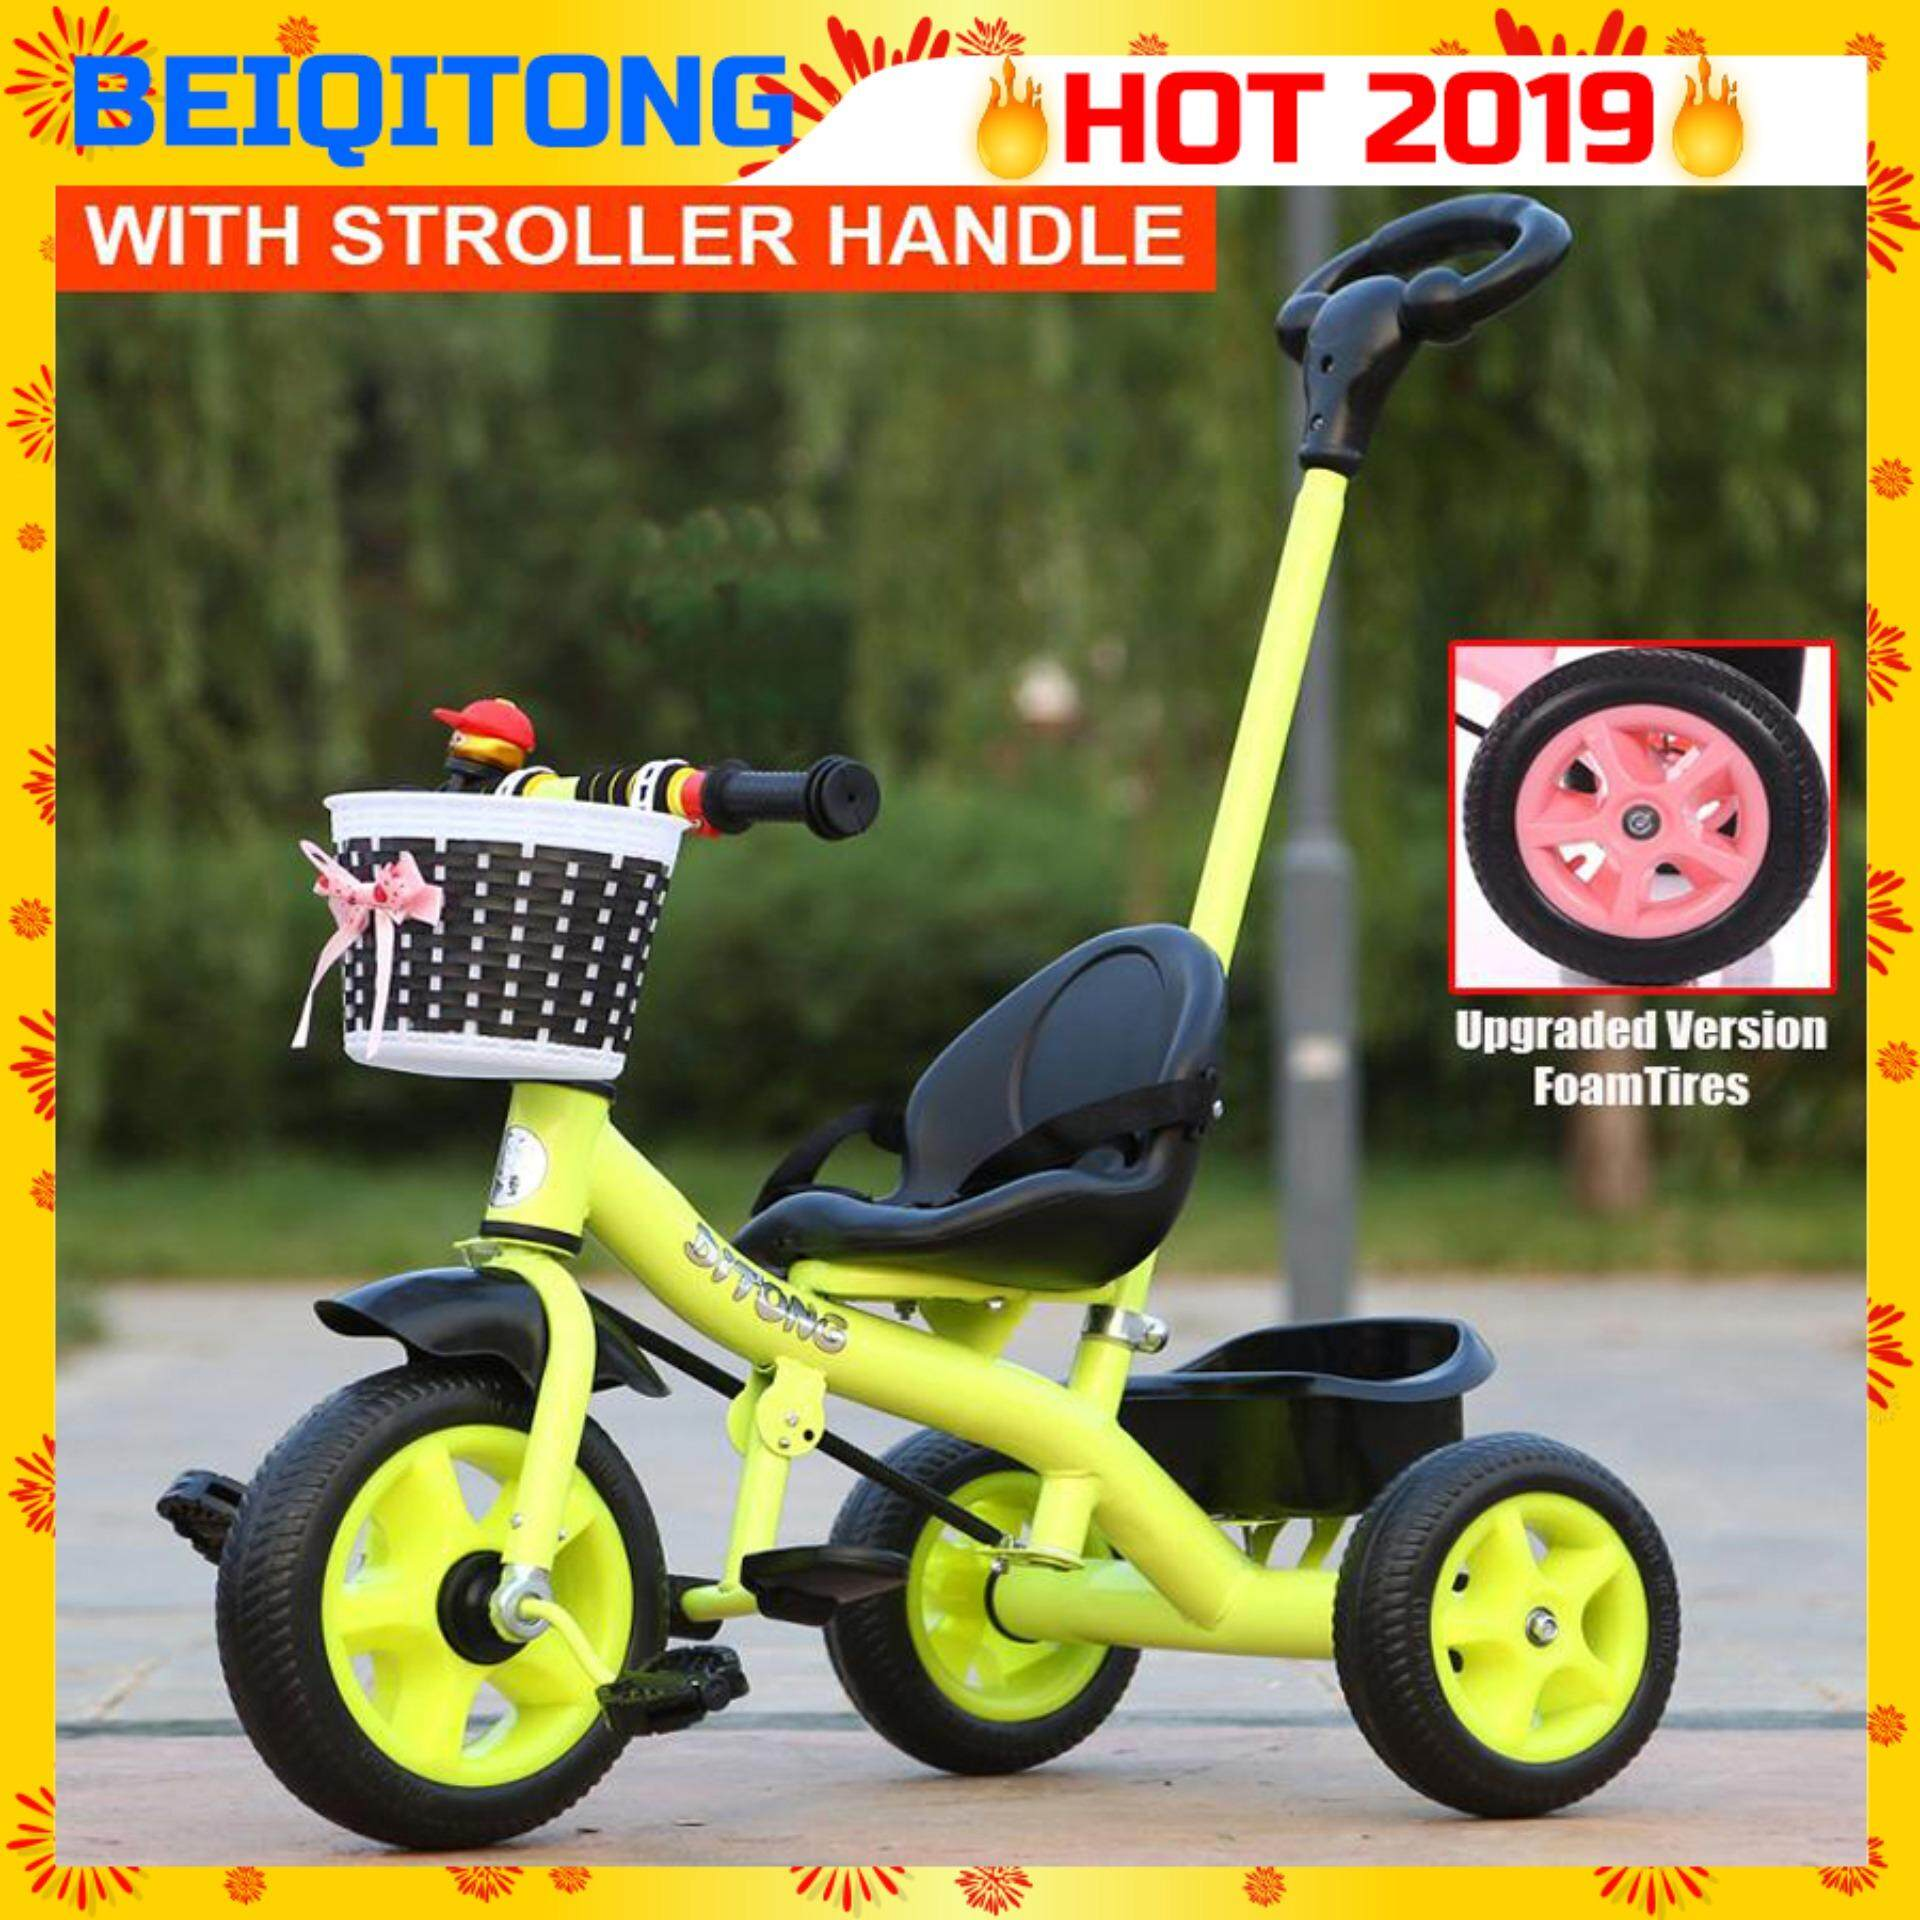 BEIQITONG YBT [BT55] Kids Tricycle Baby Walker Bicycle Children's Outdoor Toys Bicycles Ride On Bikes With Stroller Handle